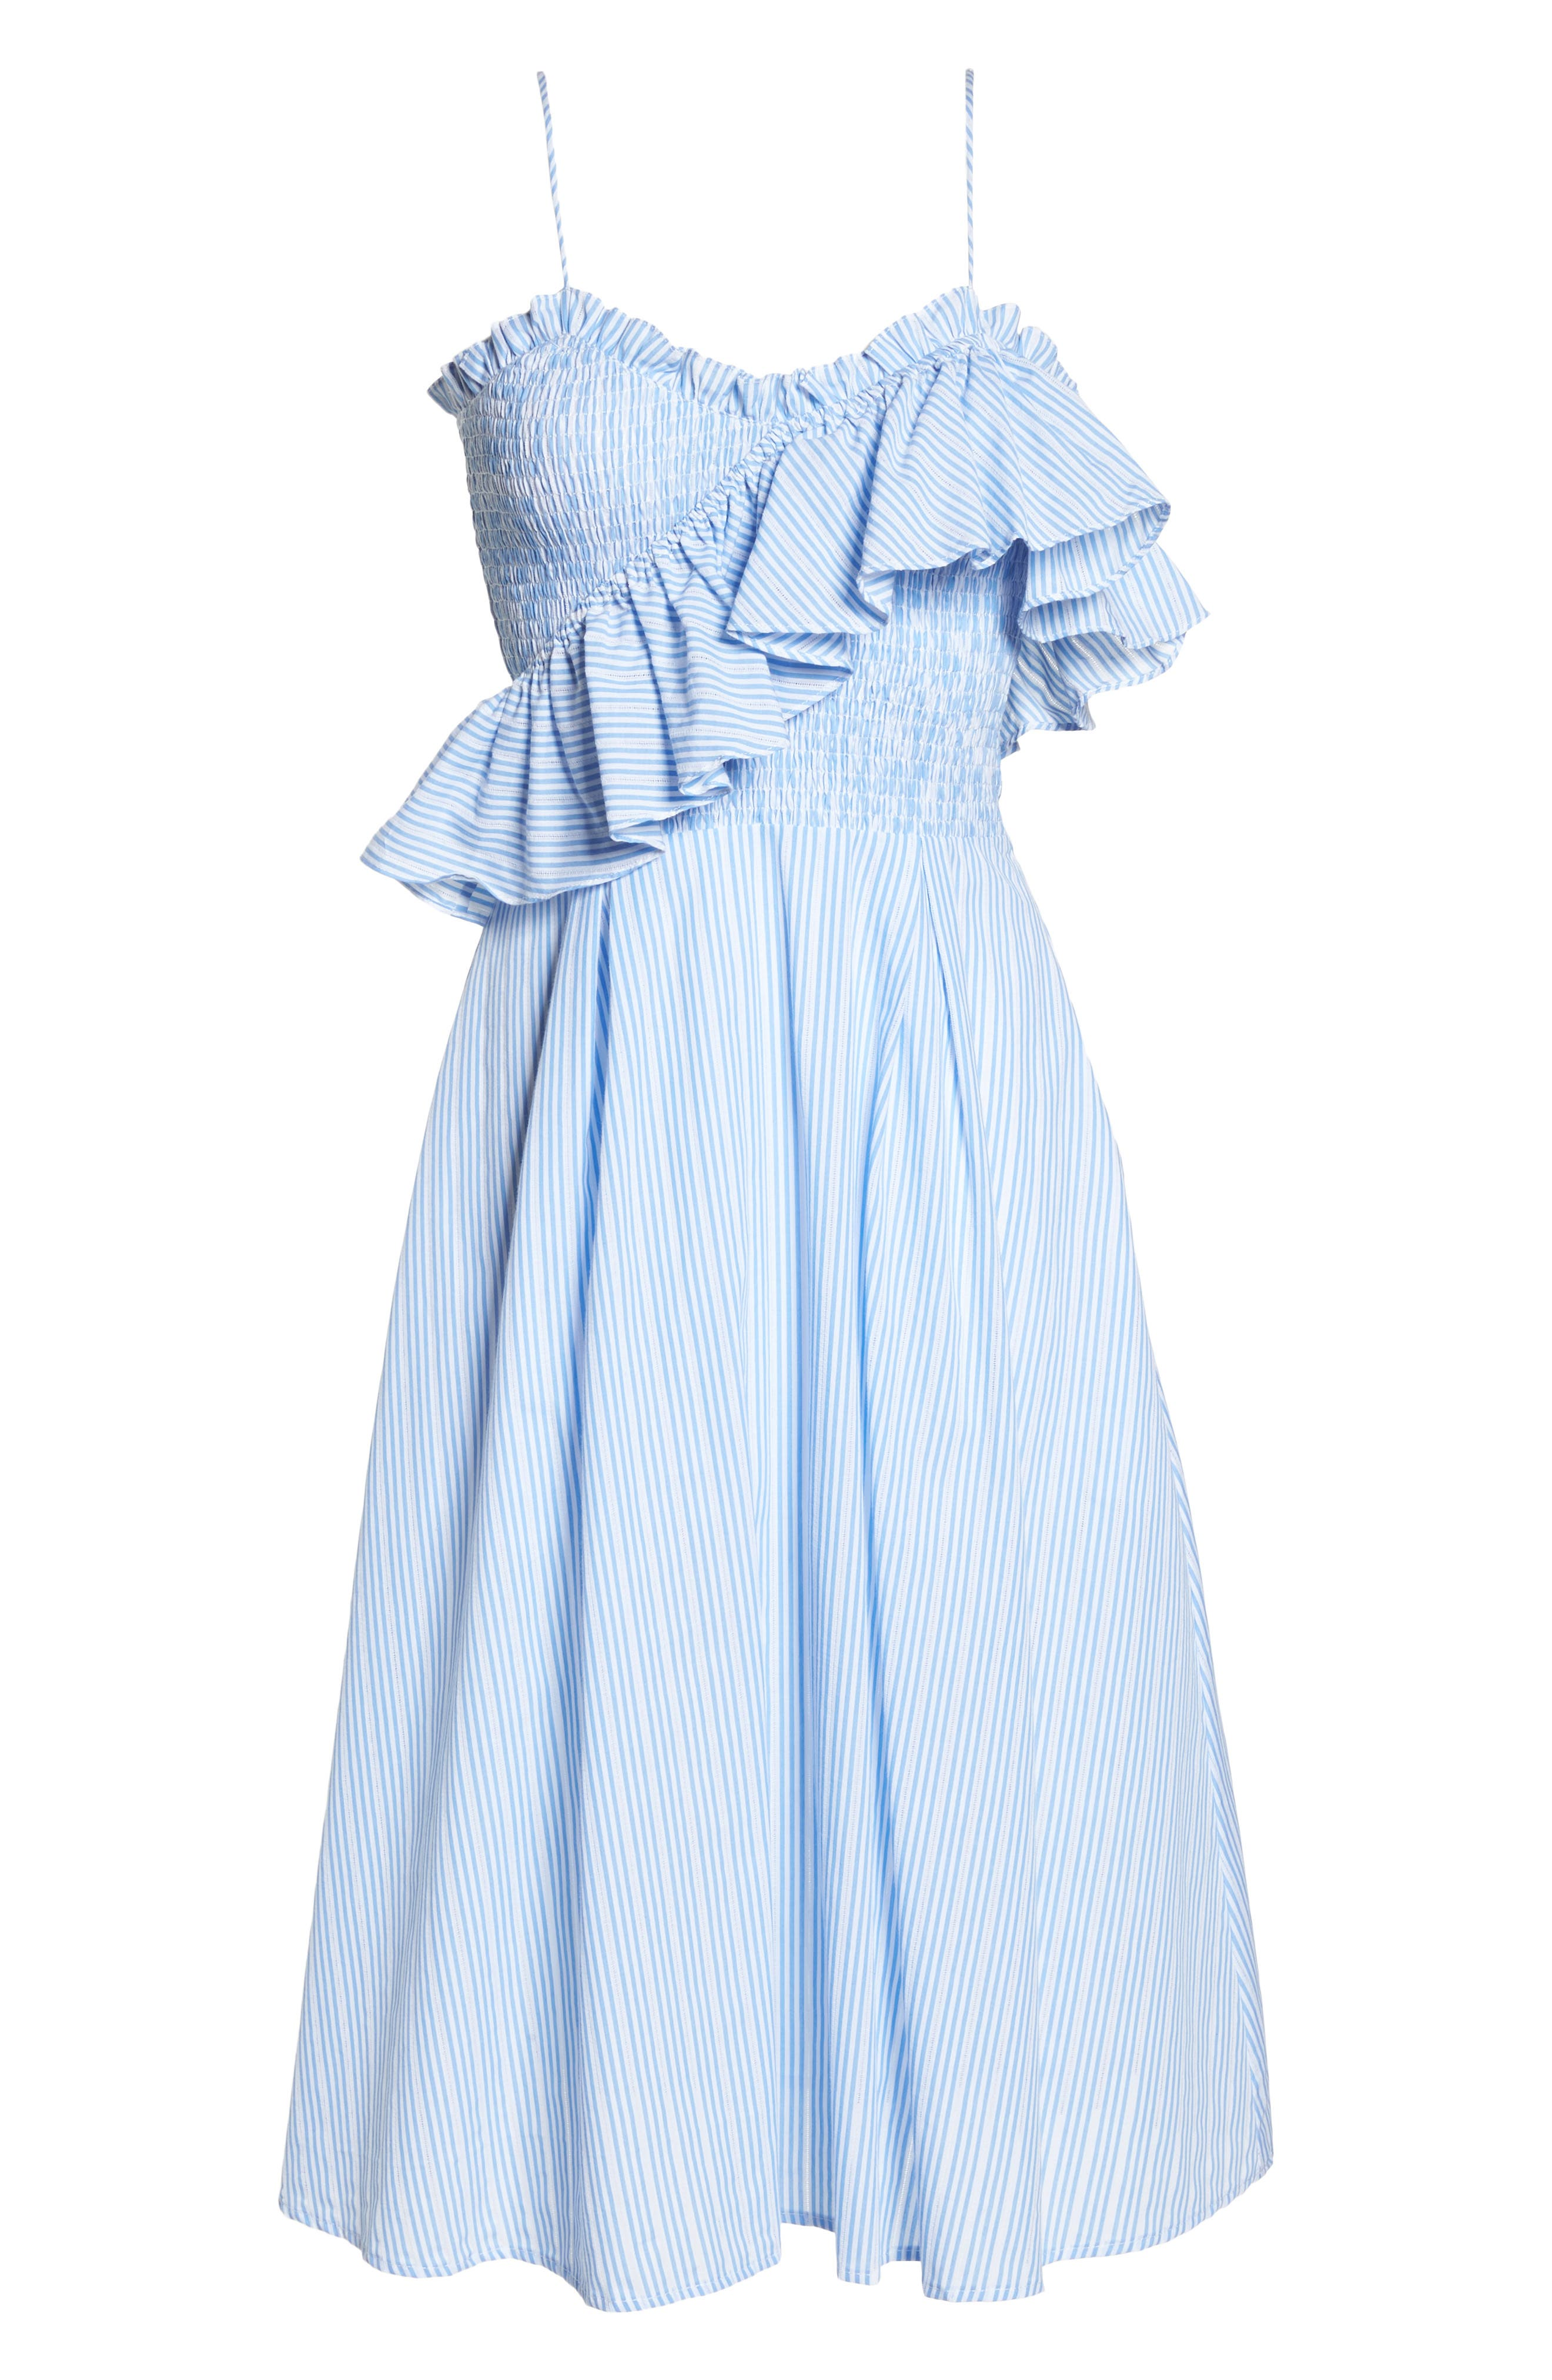 Stripe Poplin Fit & Flare Dress,                             Alternate thumbnail 7, color,                             Light Blue